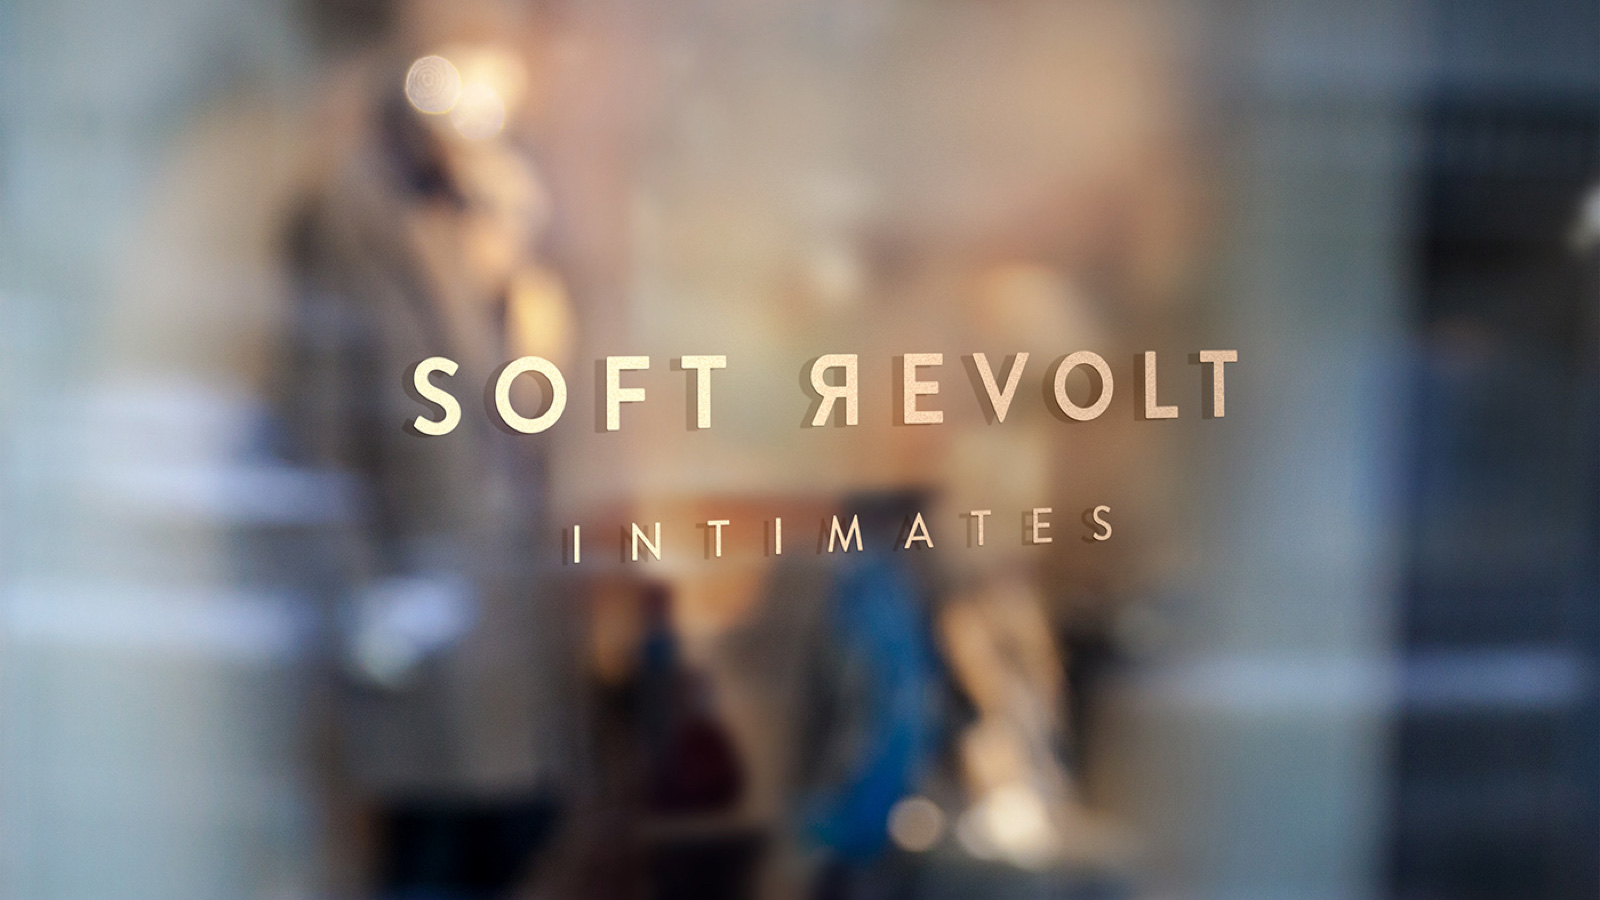 A clean and sustainable brand identity for lingerie company Soft Revolt by Haelsum